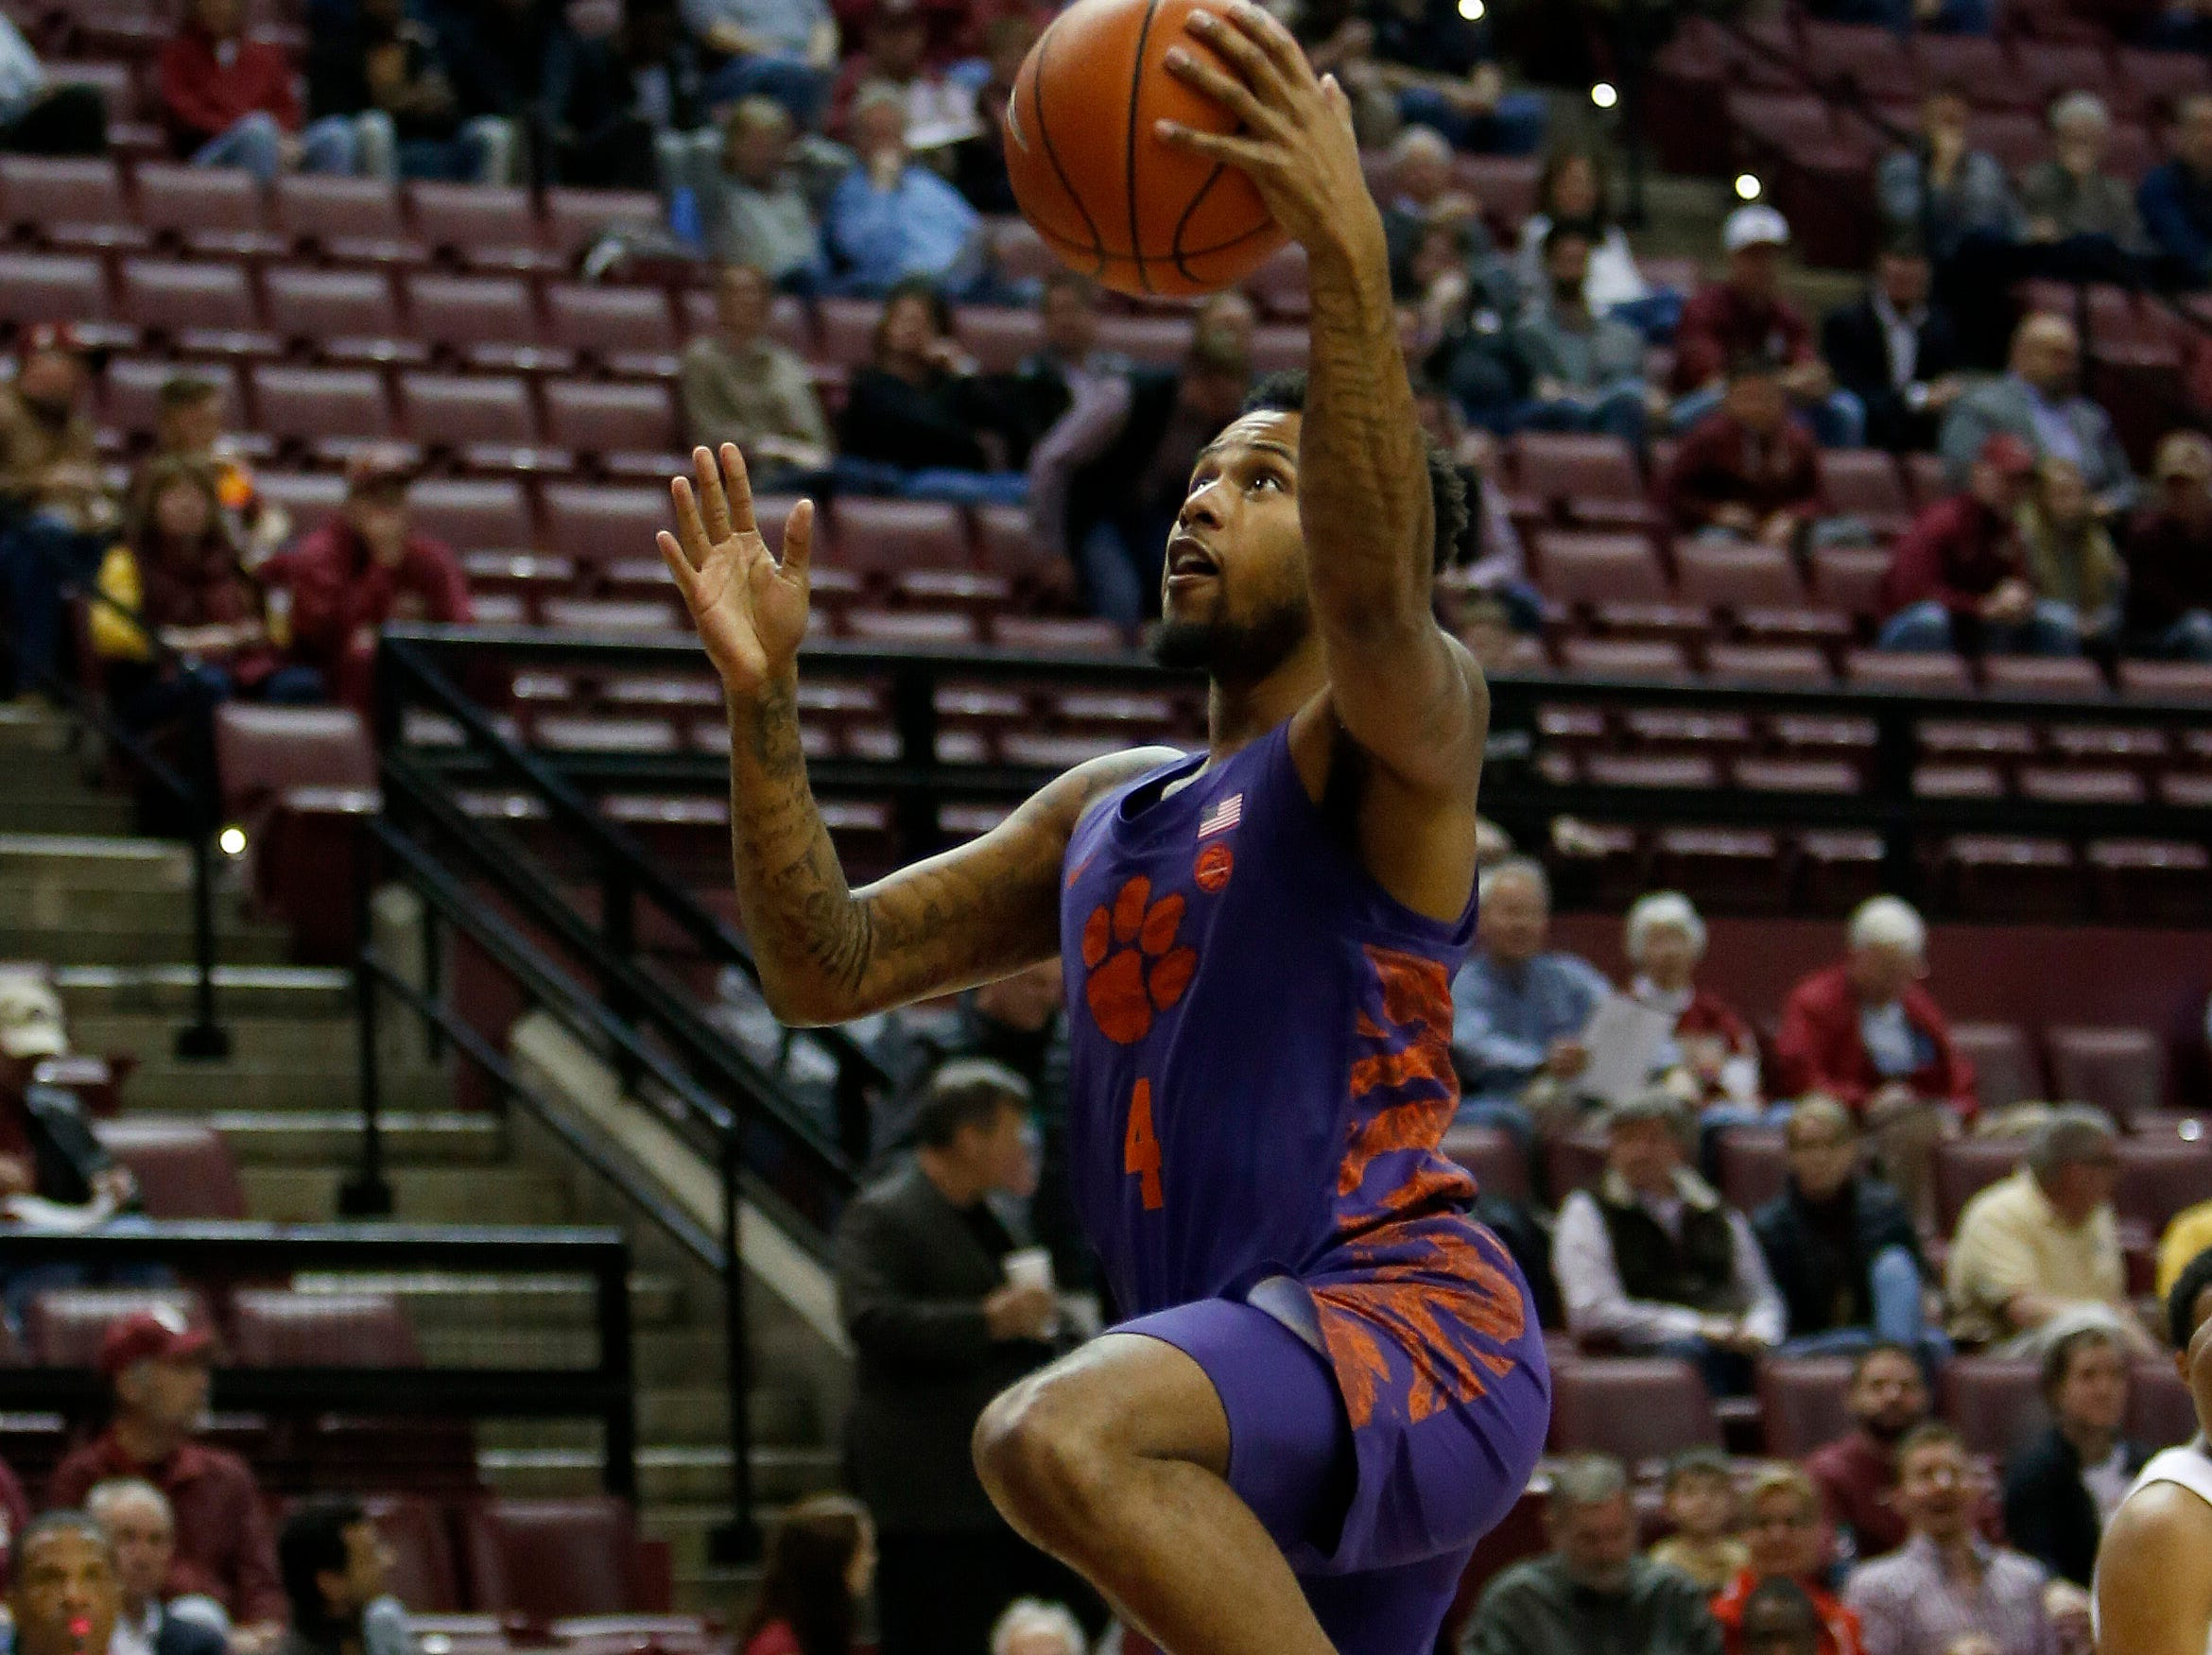 Jan 22, 2019; Tallahassee, FL, USA; Clemson Tigers guard Shelton Mitchell (4) scores on a layup against the Florida State Seminoles during the first half at Donald L. Tucker Center. Mandatory Credit: Glenn Beil-USA TODAY Sports